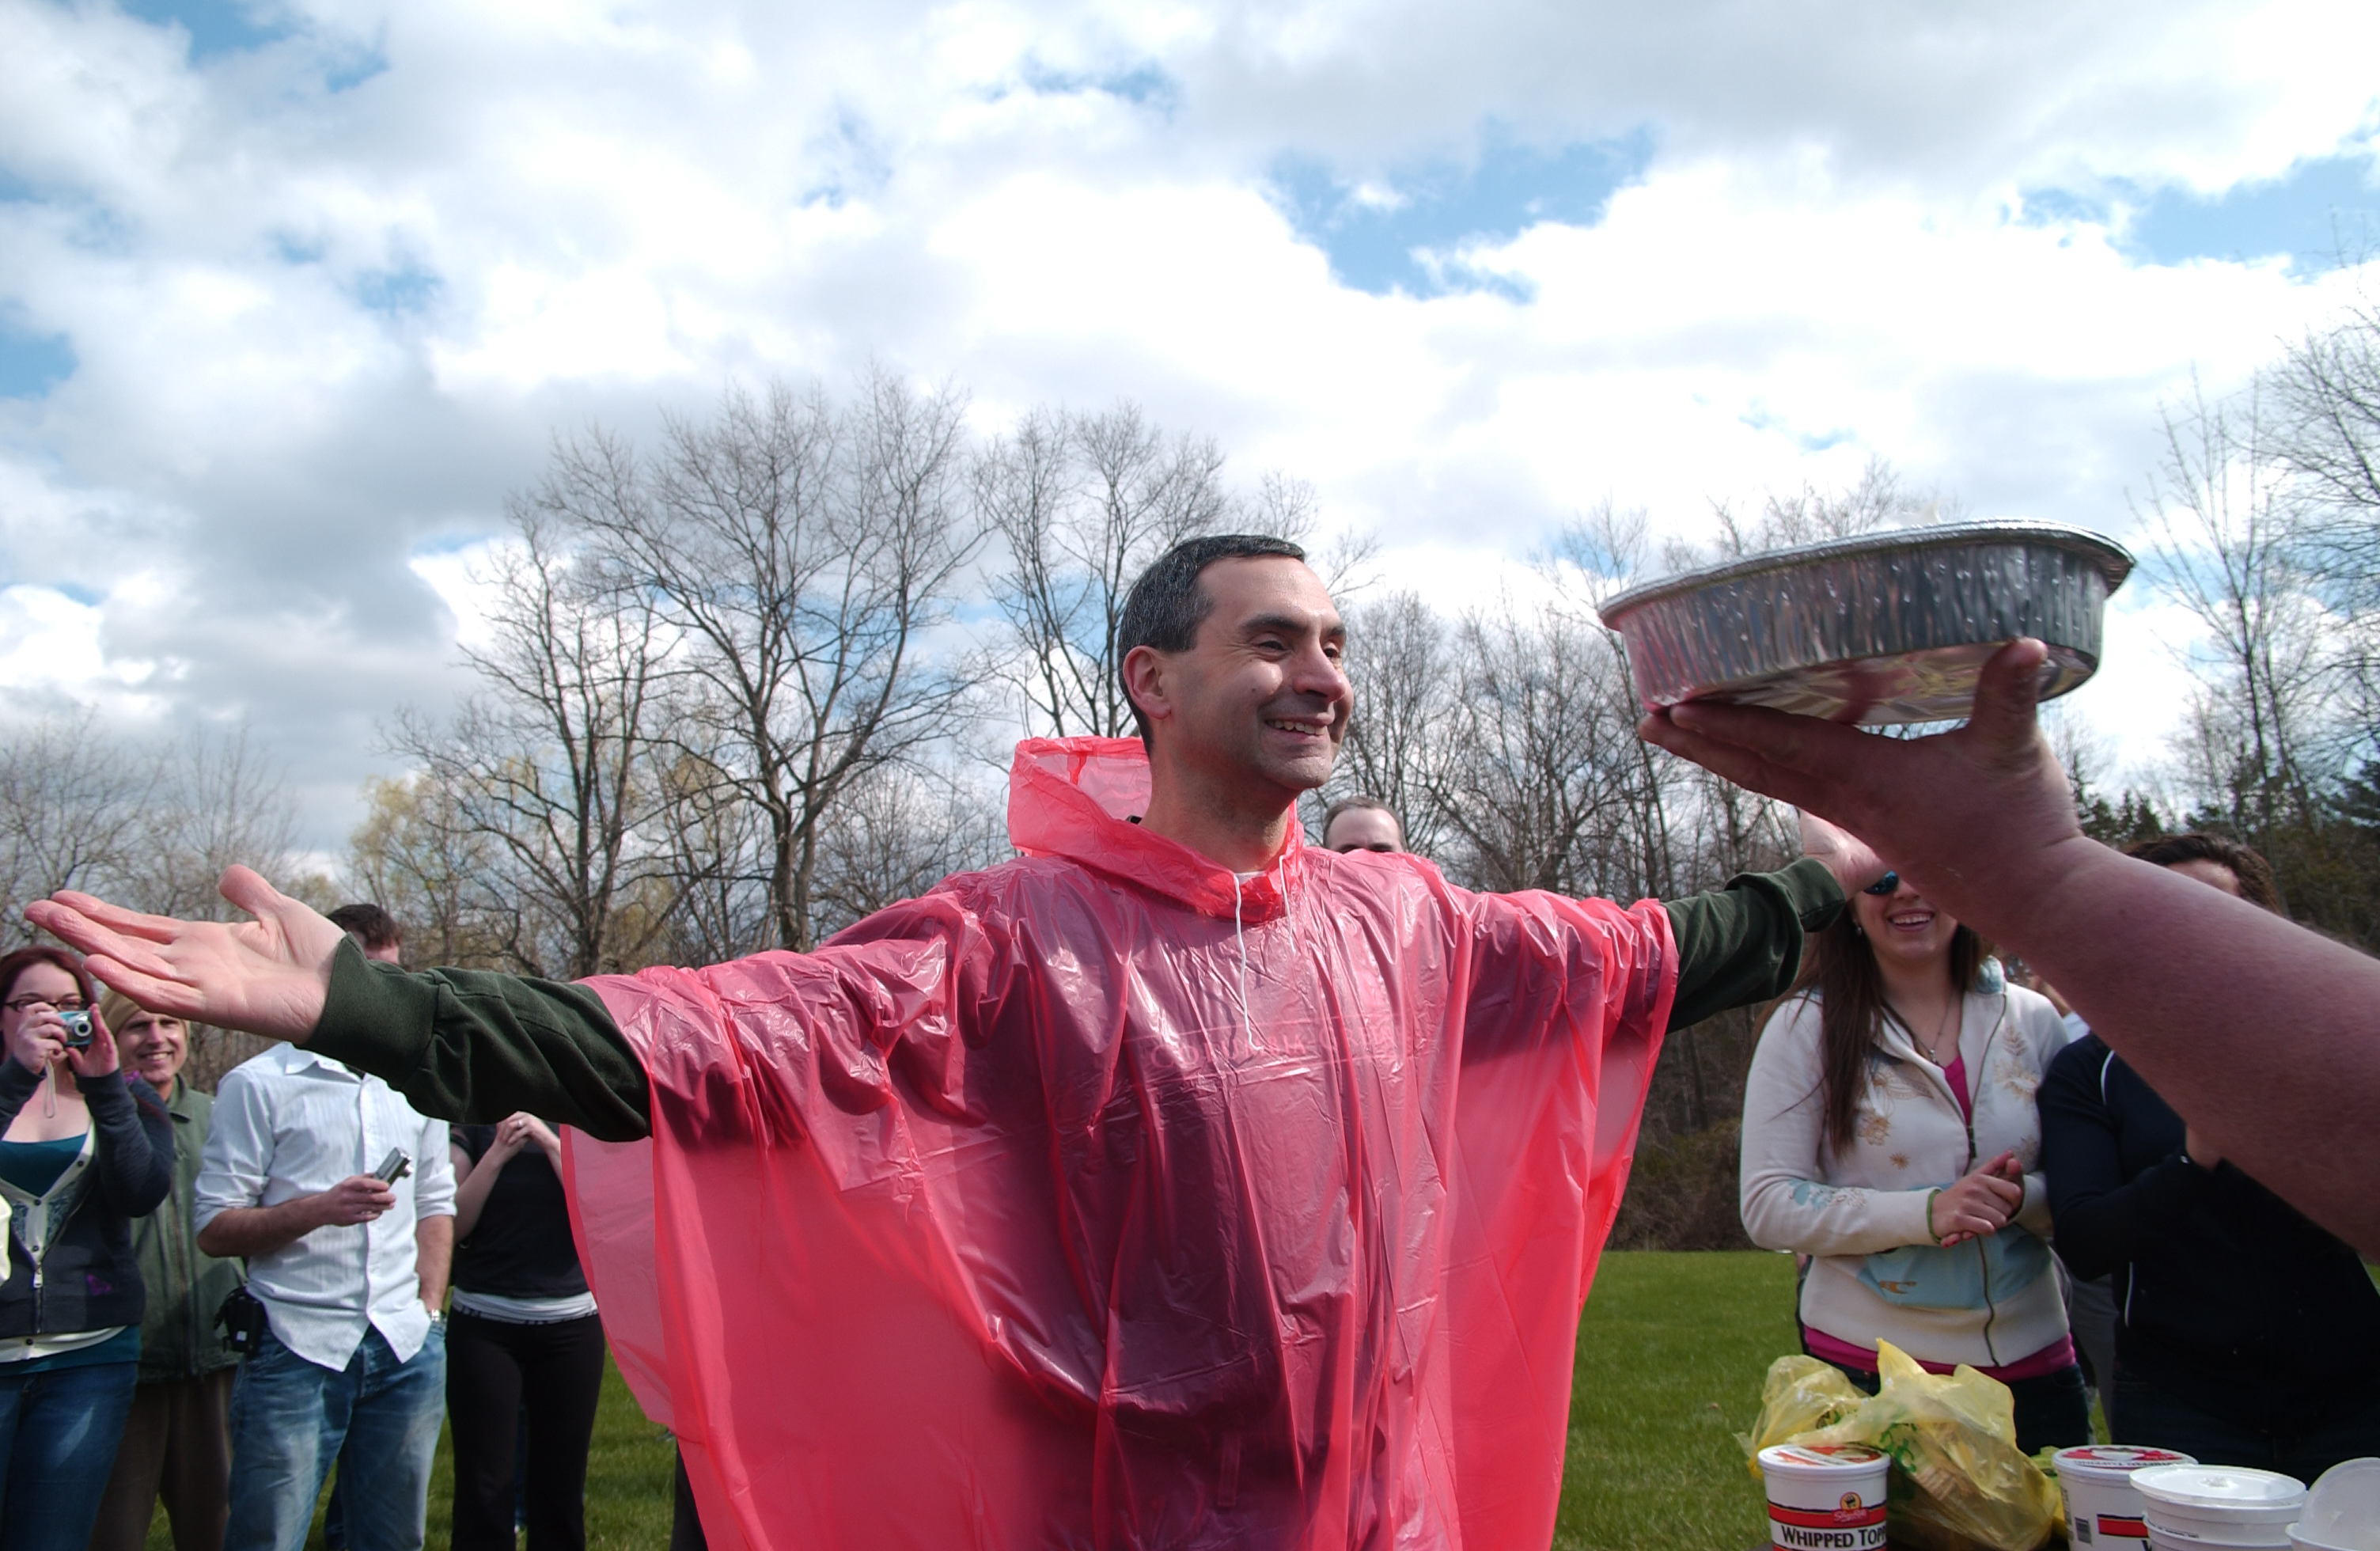 Professor in red poncho readies to take a pie to the face